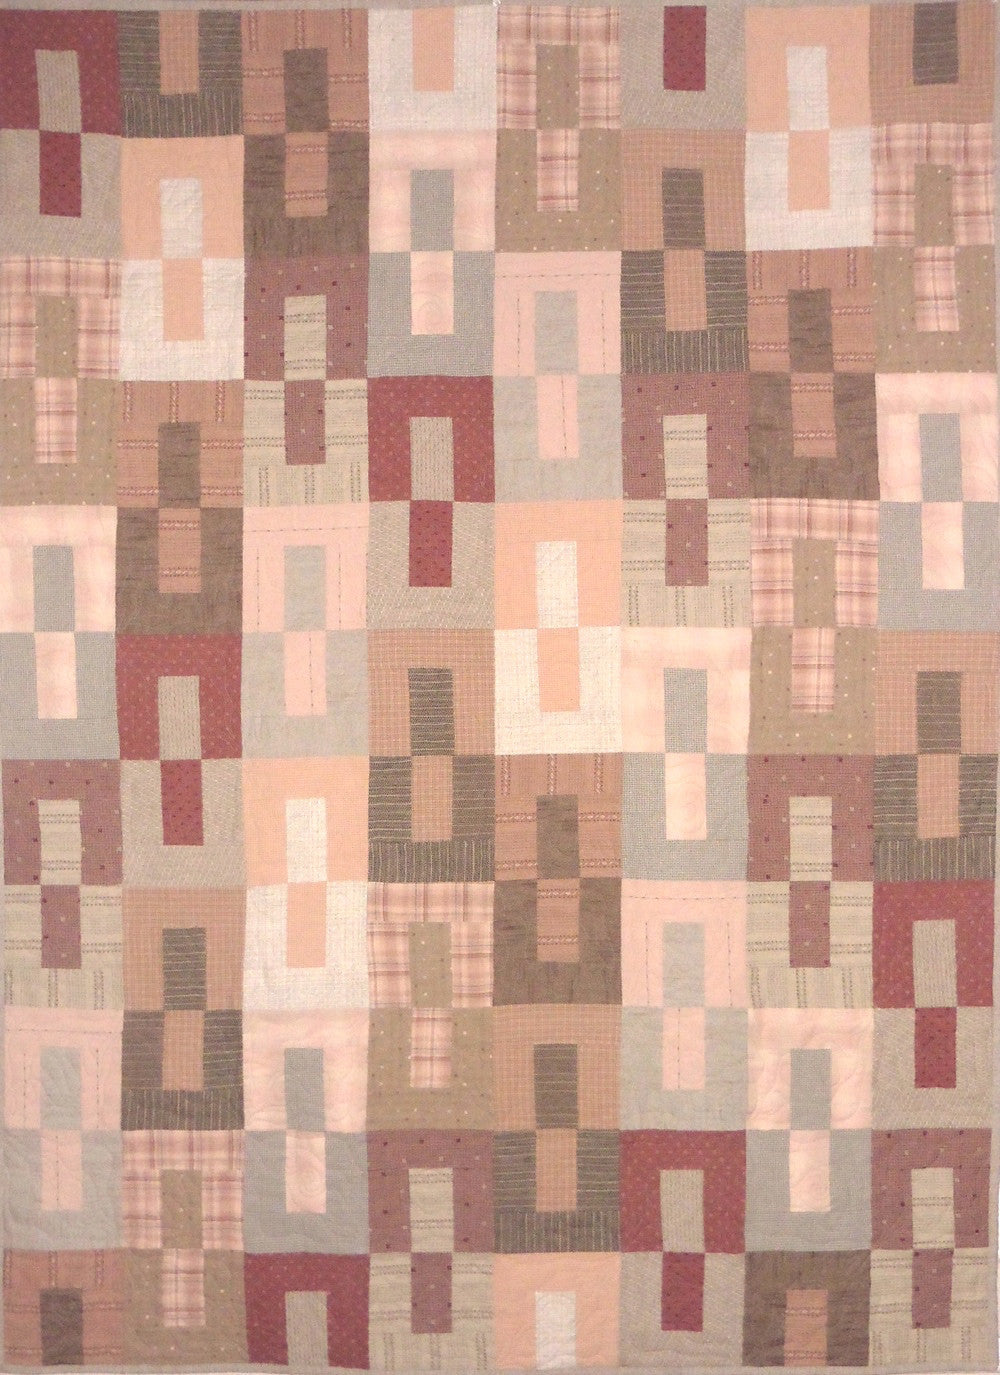 Quilt for Sale - Gemini